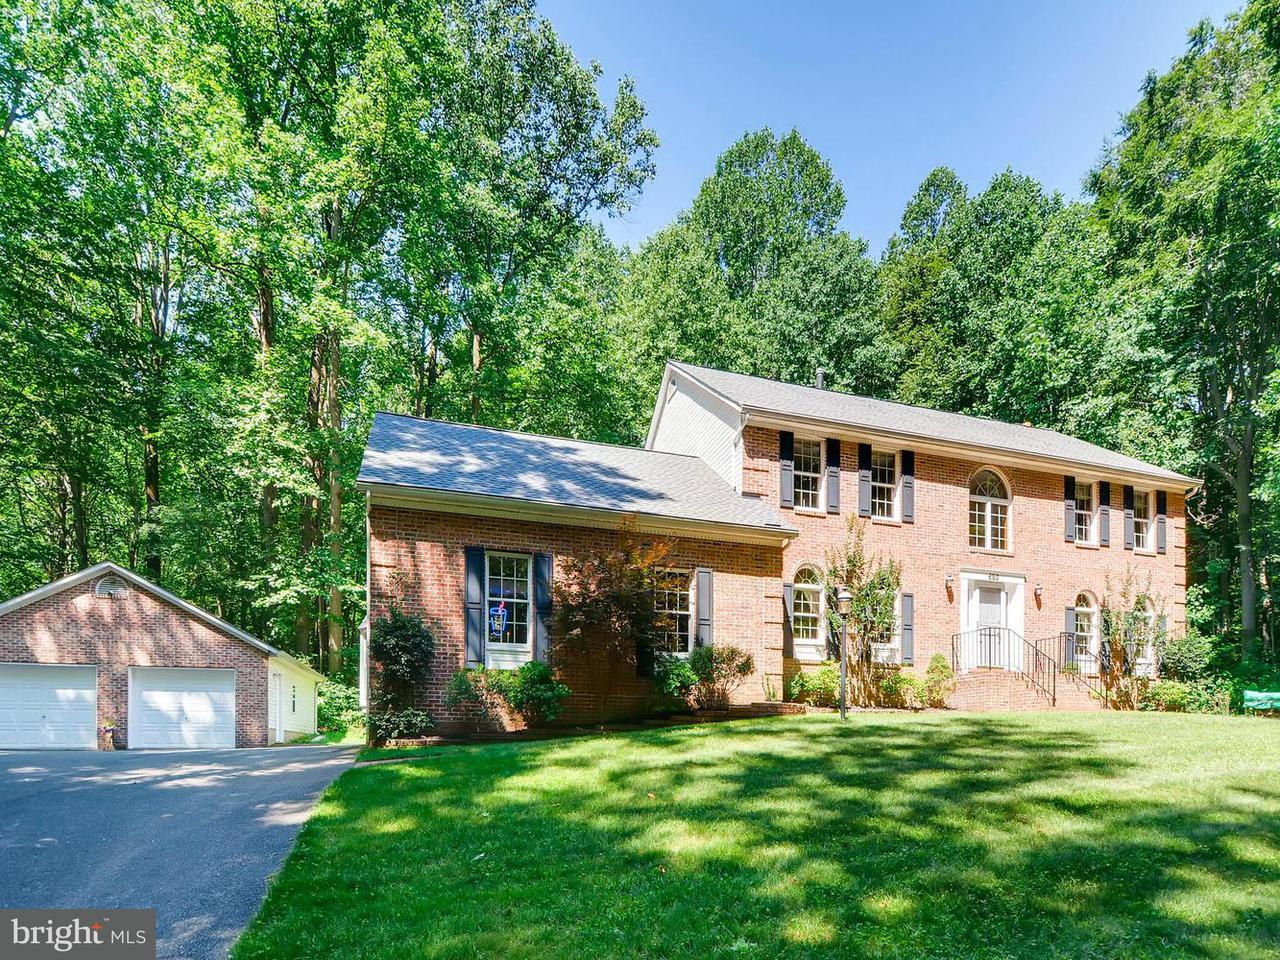 Single Family Home for Sale at 680 OLD JOPPA Road 680 OLD JOPPA Road Joppa, Maryland 21085 United States